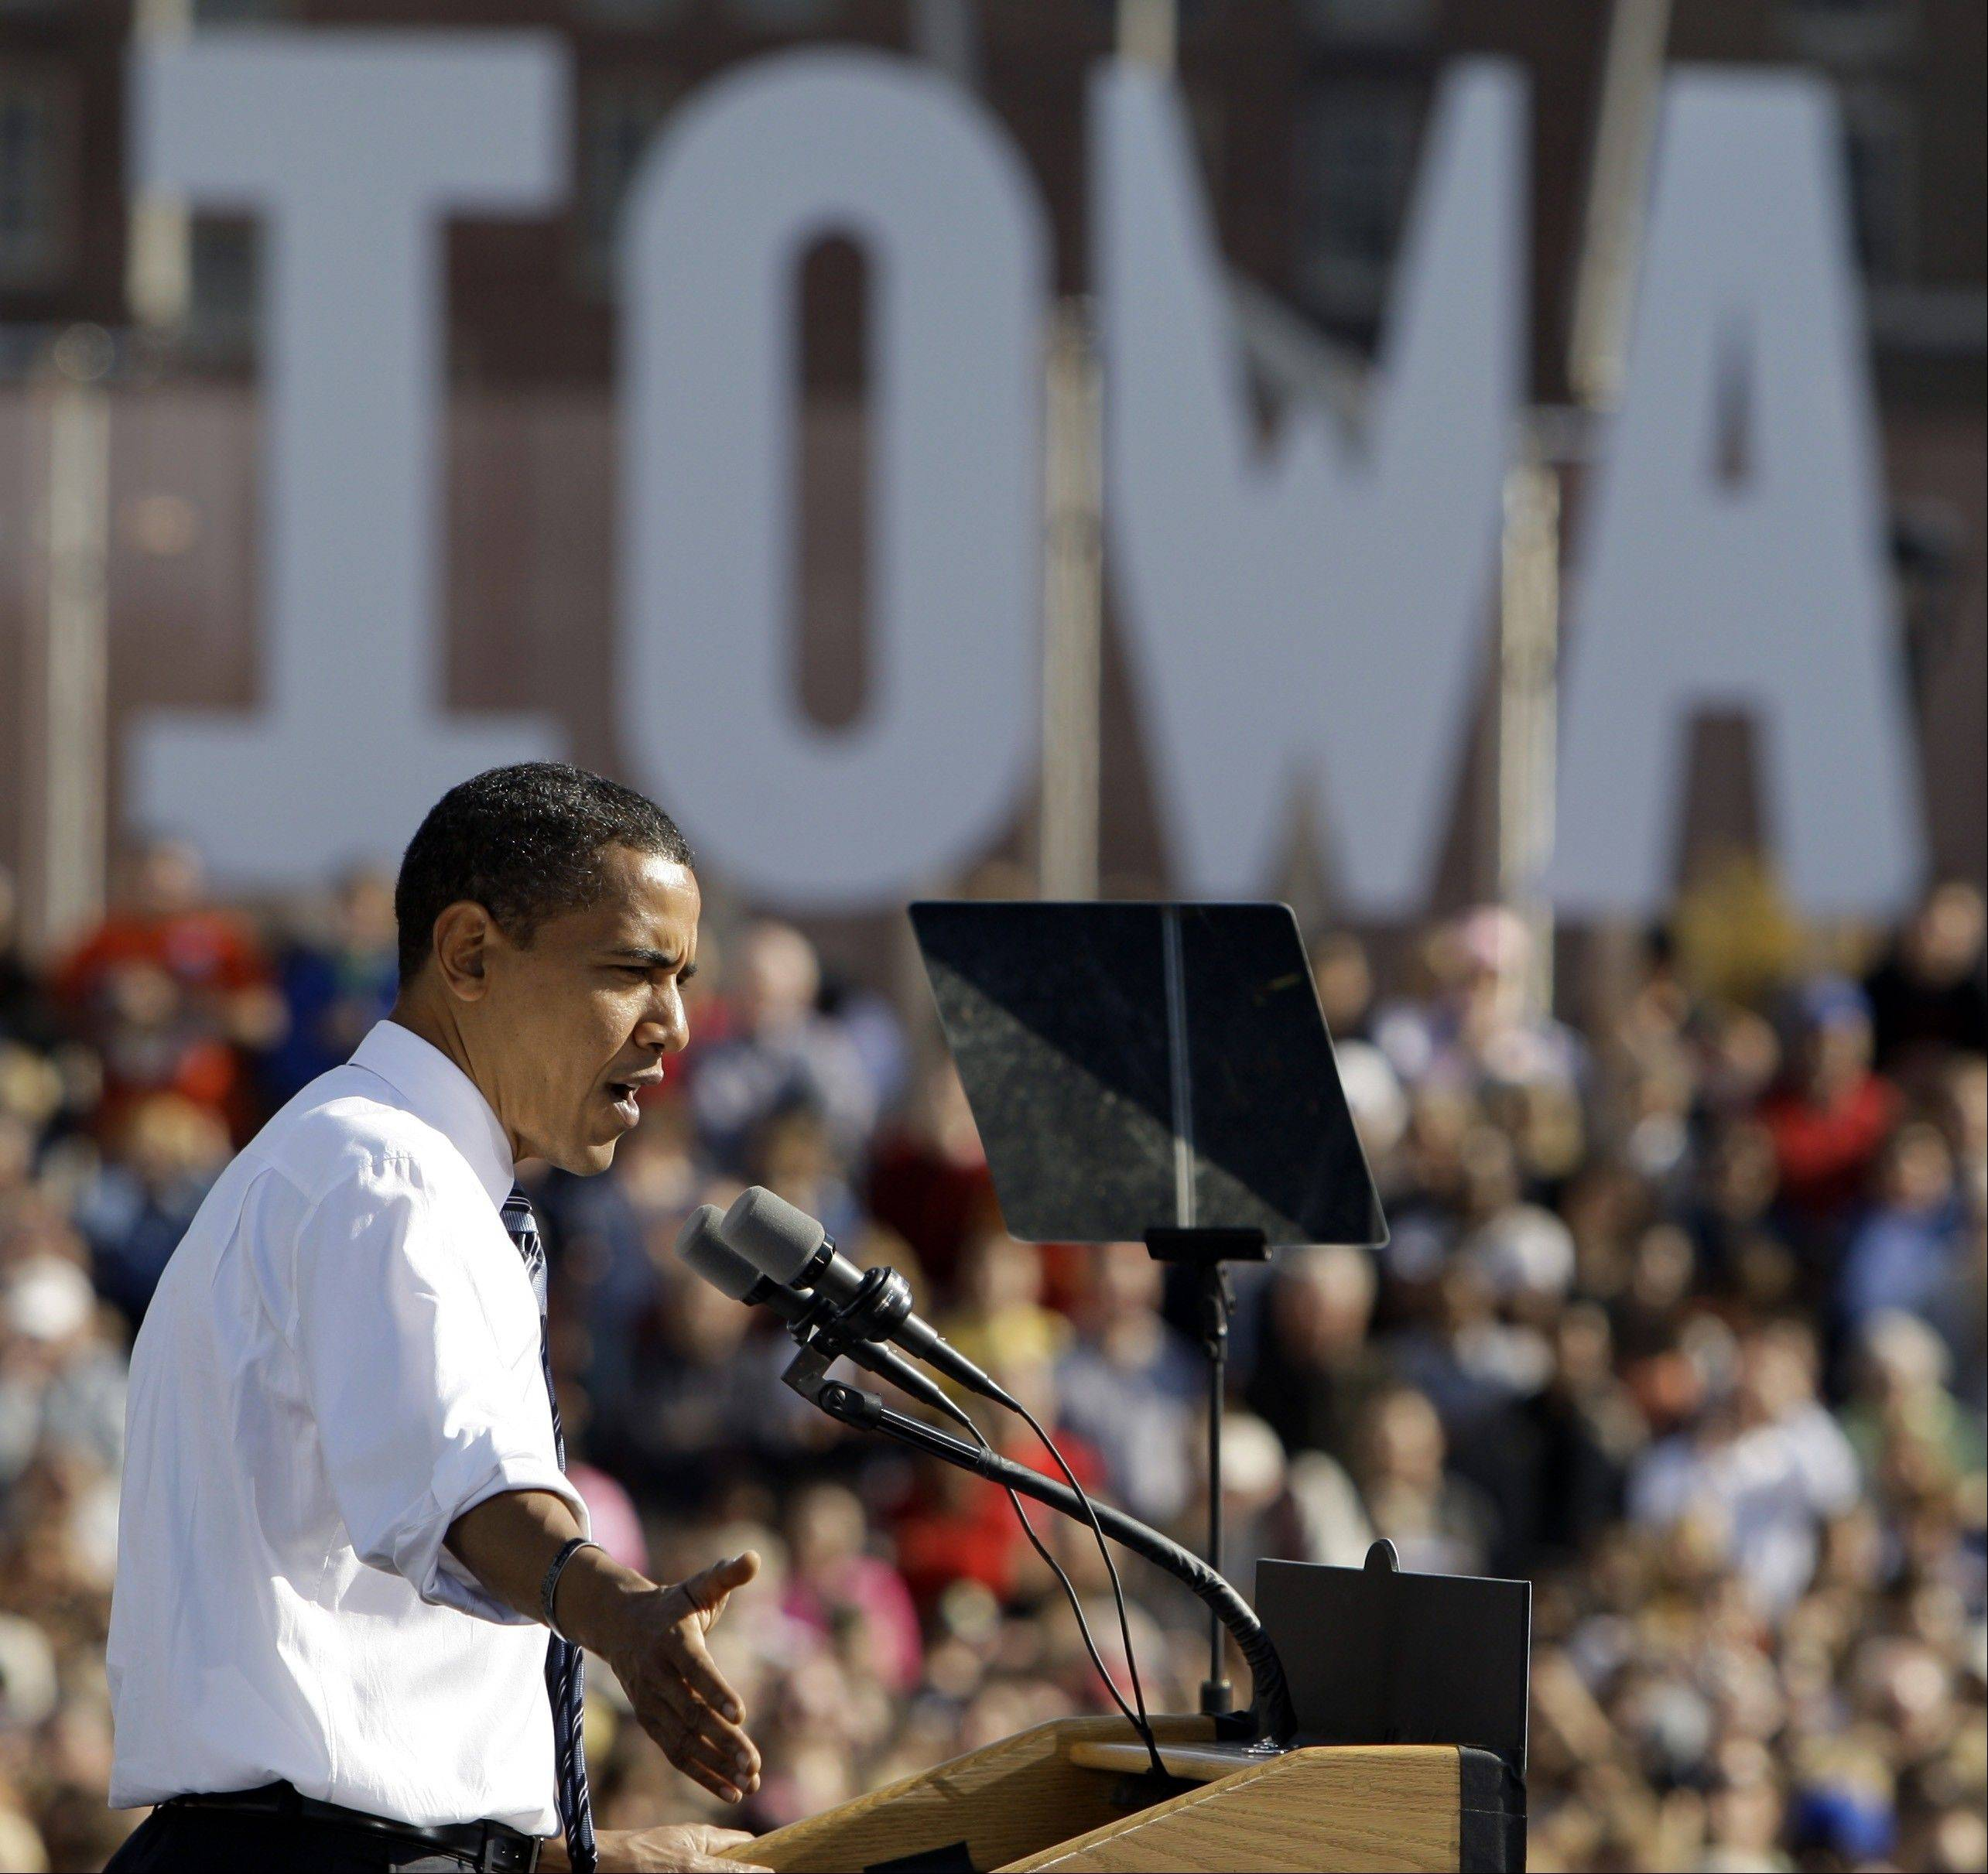 Associated Press/Oct. 21, 2008Then-Democratic presidential candidate Sen. Barack Obama, an Illinois Democrat, speaks at a rally at Western Gateway Park in Des Moines, Iowa. The president's re-election campaign is increasingly sounding like a nostalgia tour.